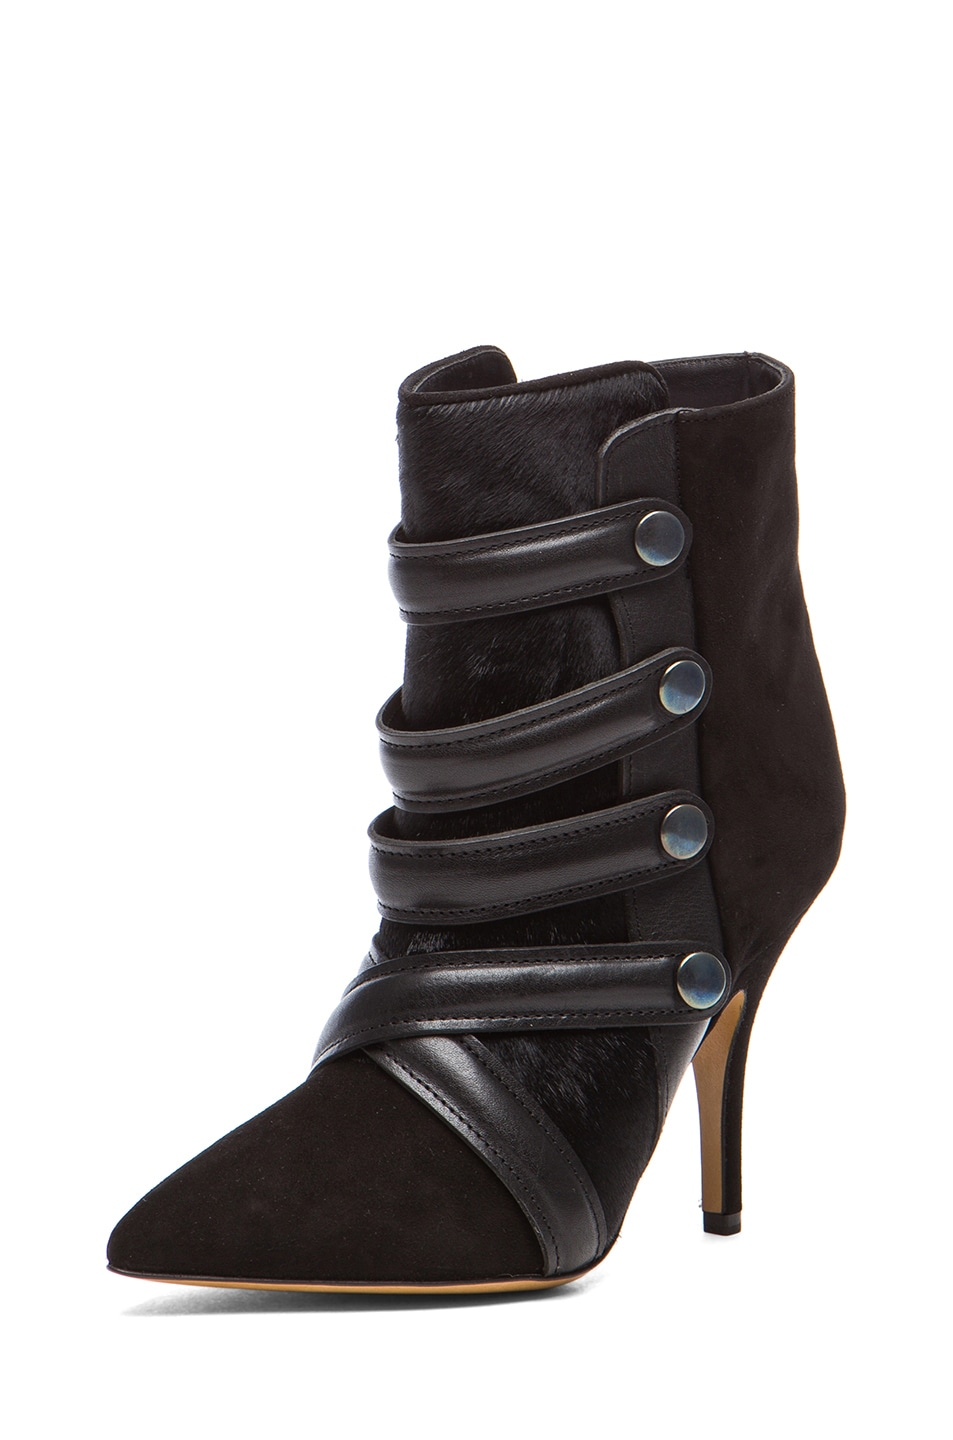 Image 2 of Isabel Marant Tacy Goat Suede Leather Pony Booties in Black